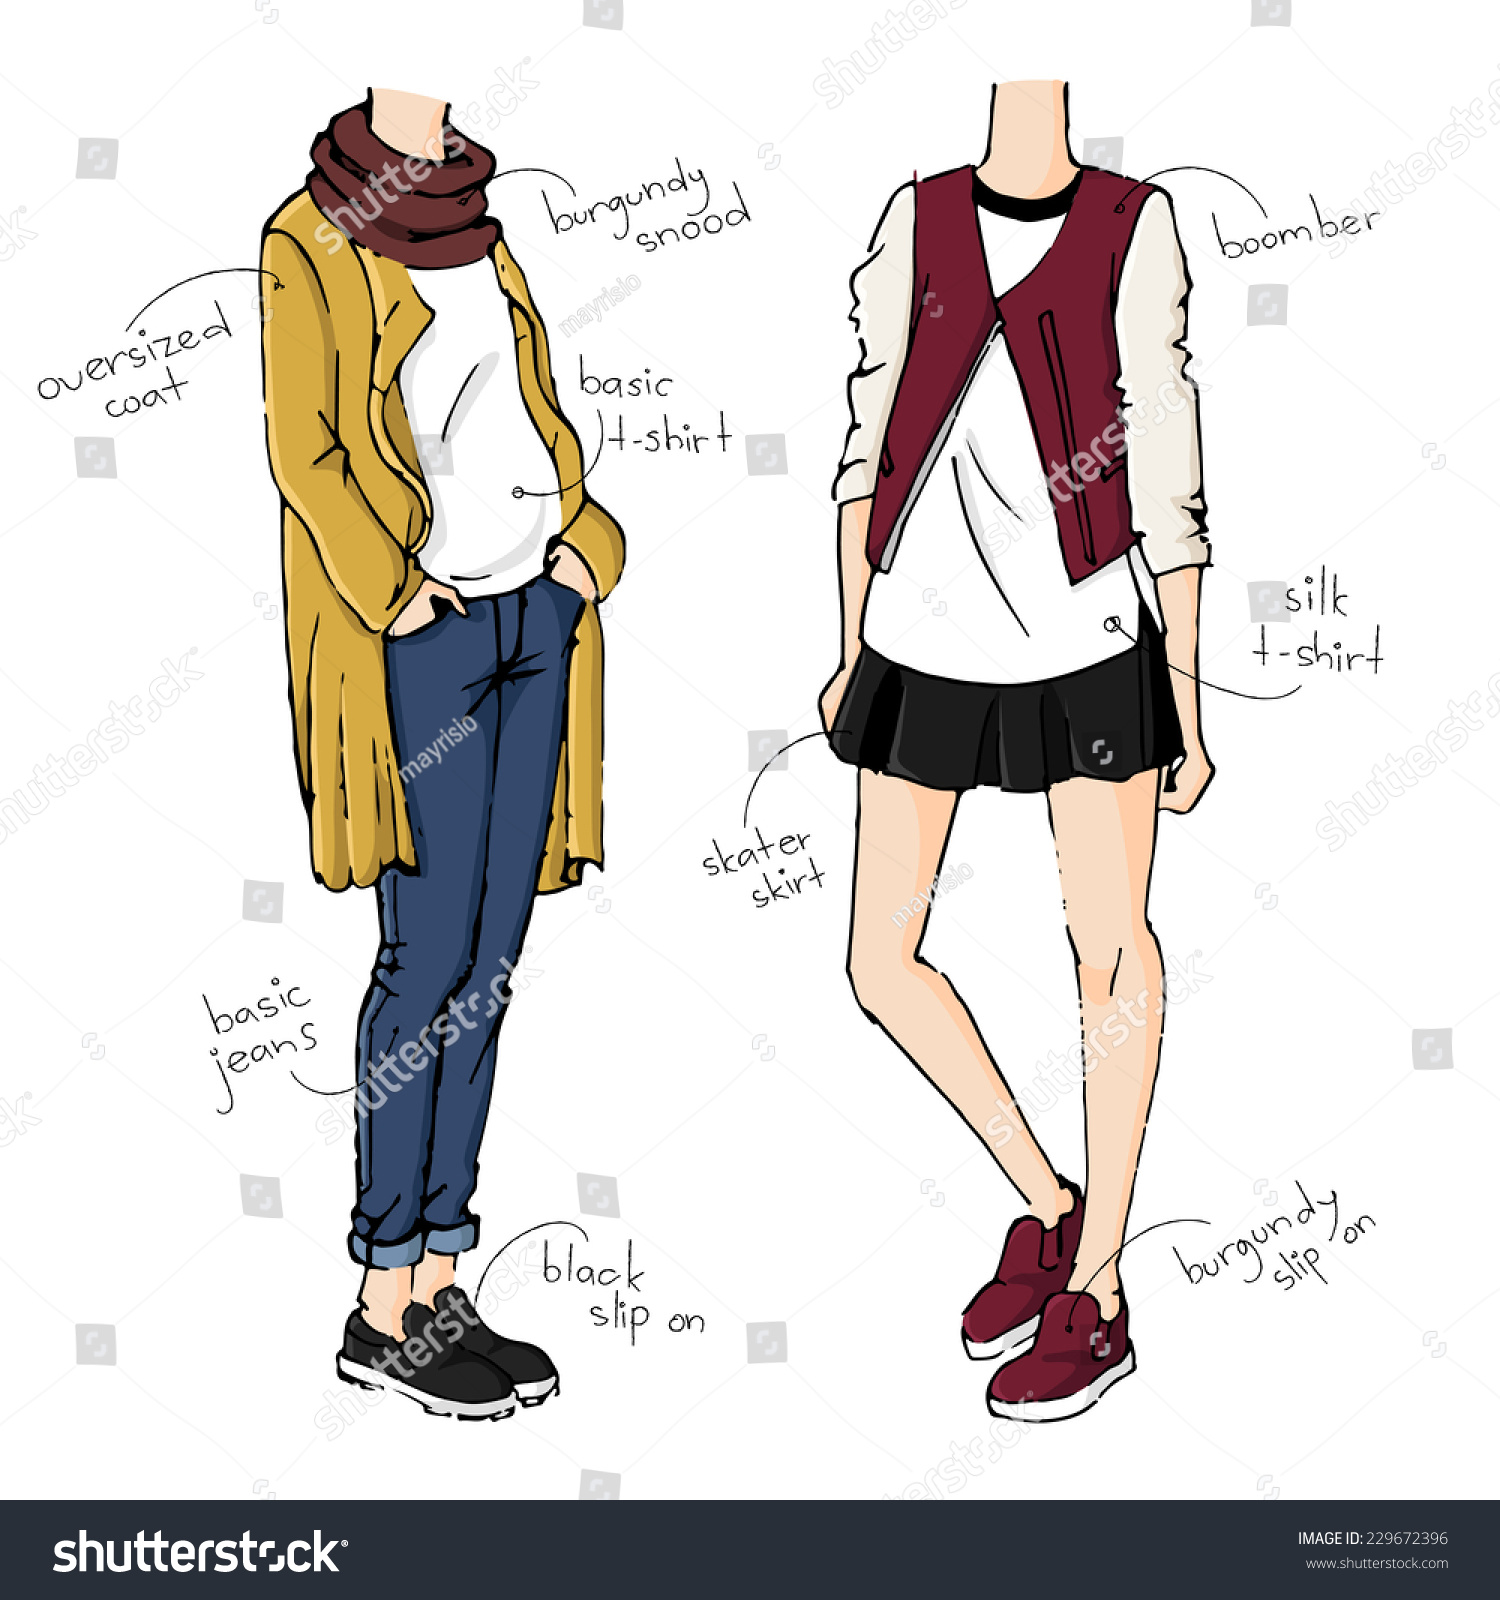 Fashion Sketch Drawing Girls Beautiful Looks Stock Vector 229672396 - Shutterstock